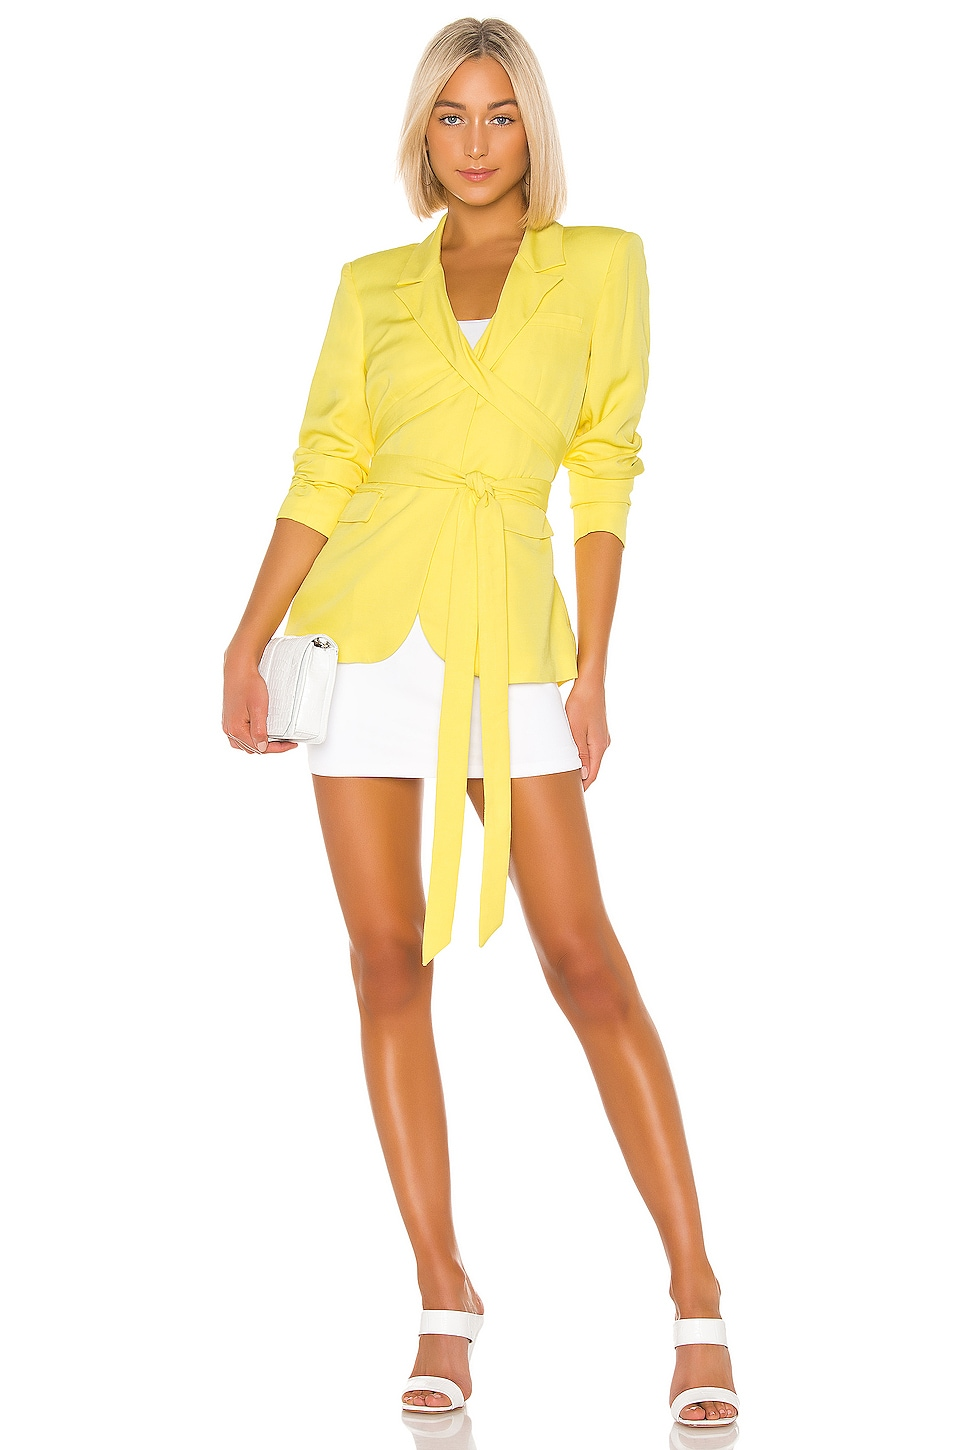 L'Academie The Maggy Blazer in Yellow